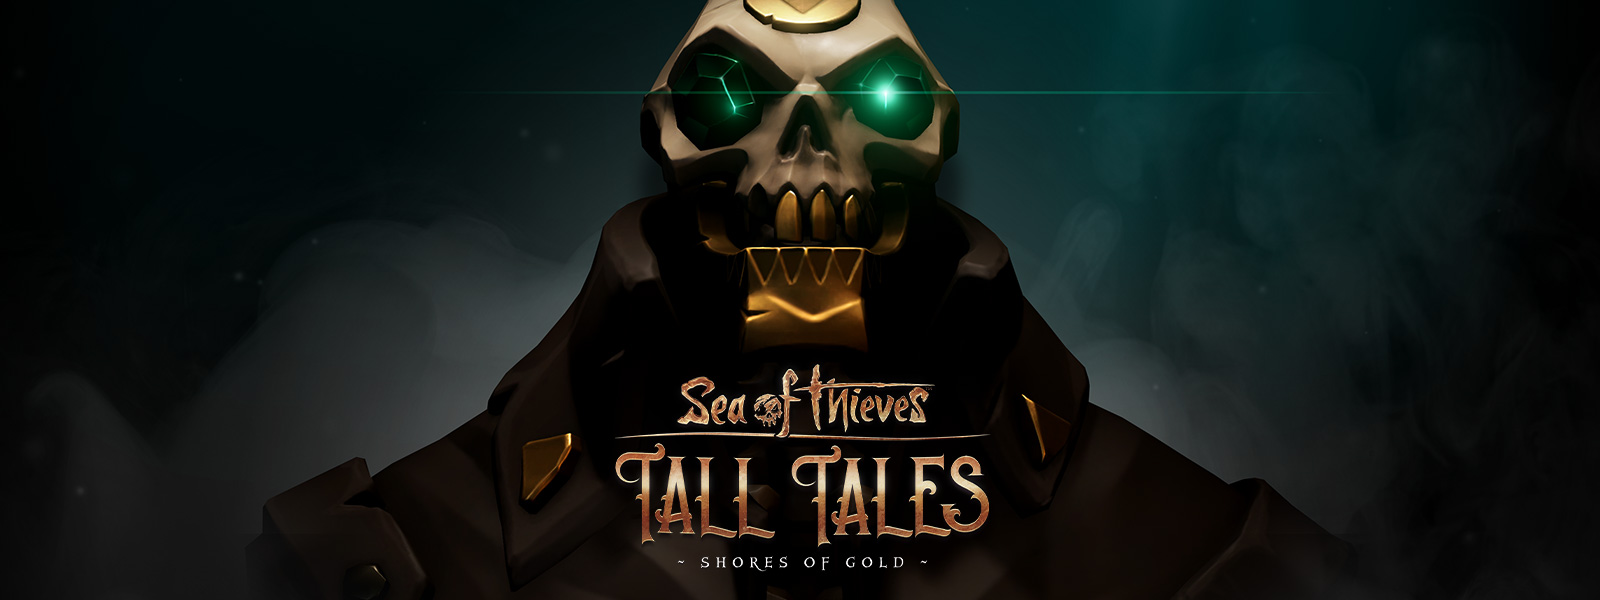 Logotipo de Sea of Thieves Shores of Gold sobre un pirata esqueleto con dientes de oro y ojos esmeralda